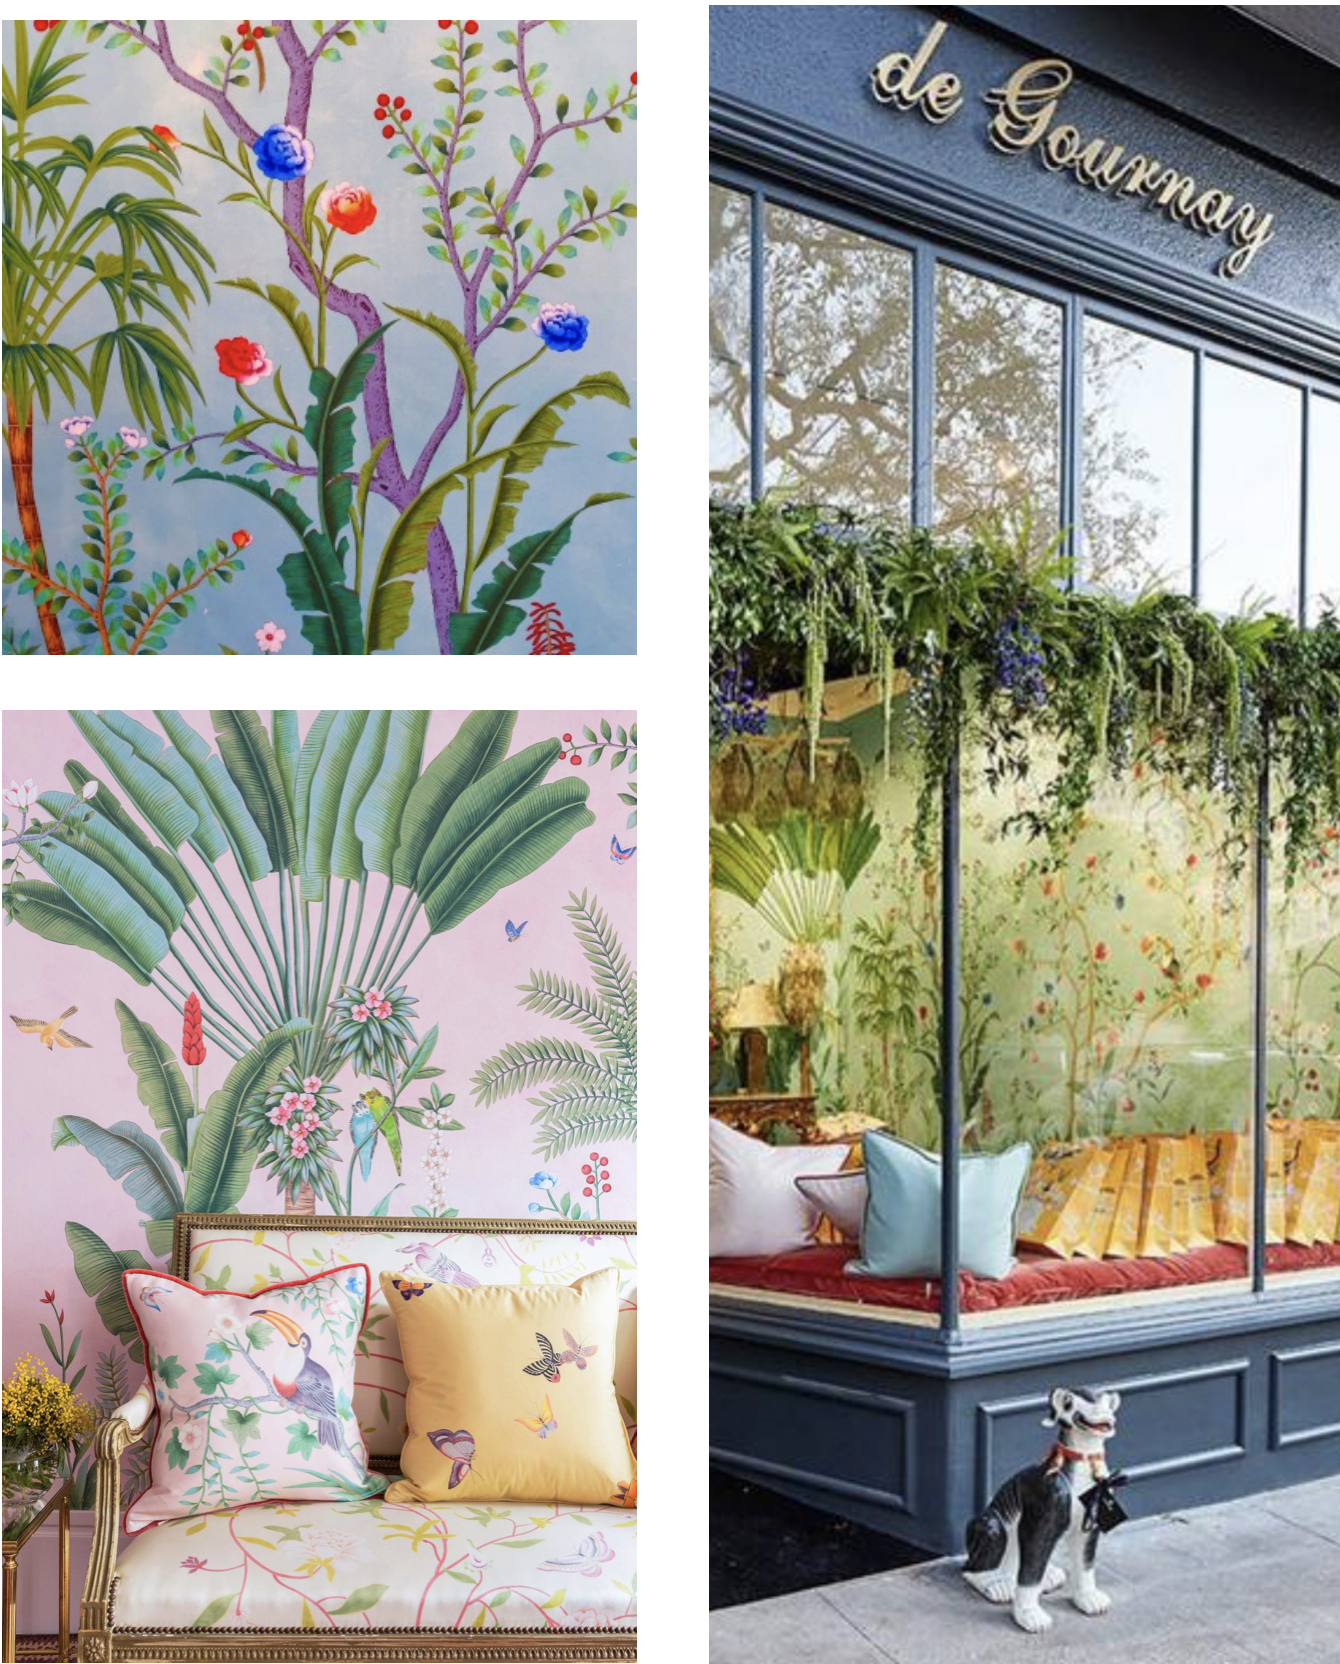 de Gournay - For exquisite hand-painted wallpaper and fabrics, you've arrived. Get lost perusing the beautiful panels and allow inspiration to envelop you. They offer beautiful damasks and other traditional fabrics. de Gournay papers and fabrics are some of our favorites for truly transformative revitalizations.Must Buy: the fabric or wallpaper for your next Revitaliste projectvisit website